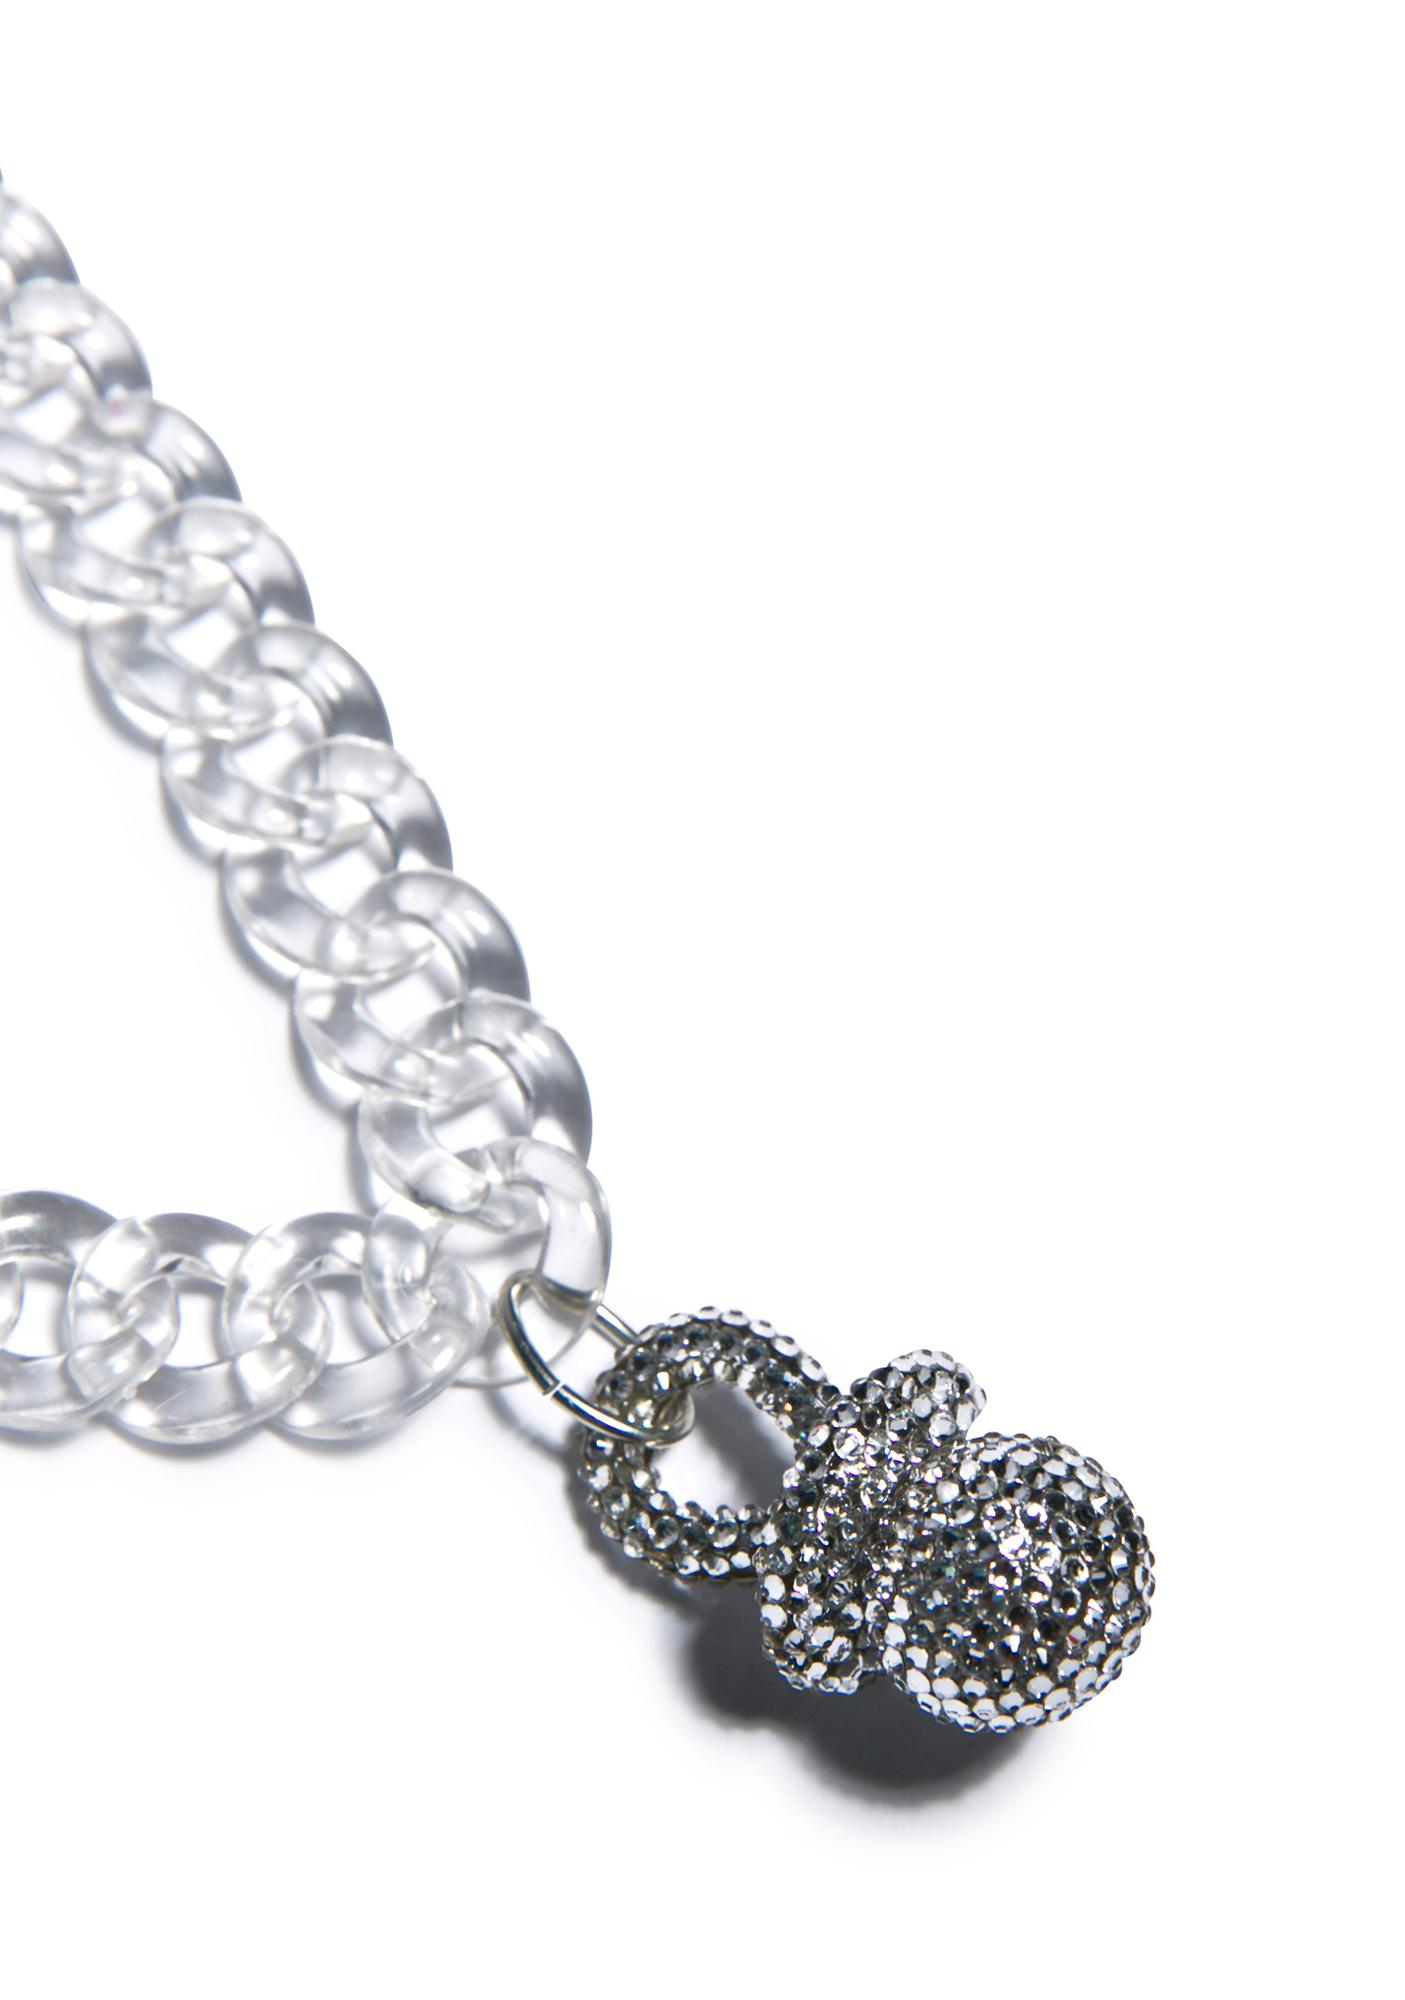 The Candy Kids Bling Bling Binky Choker